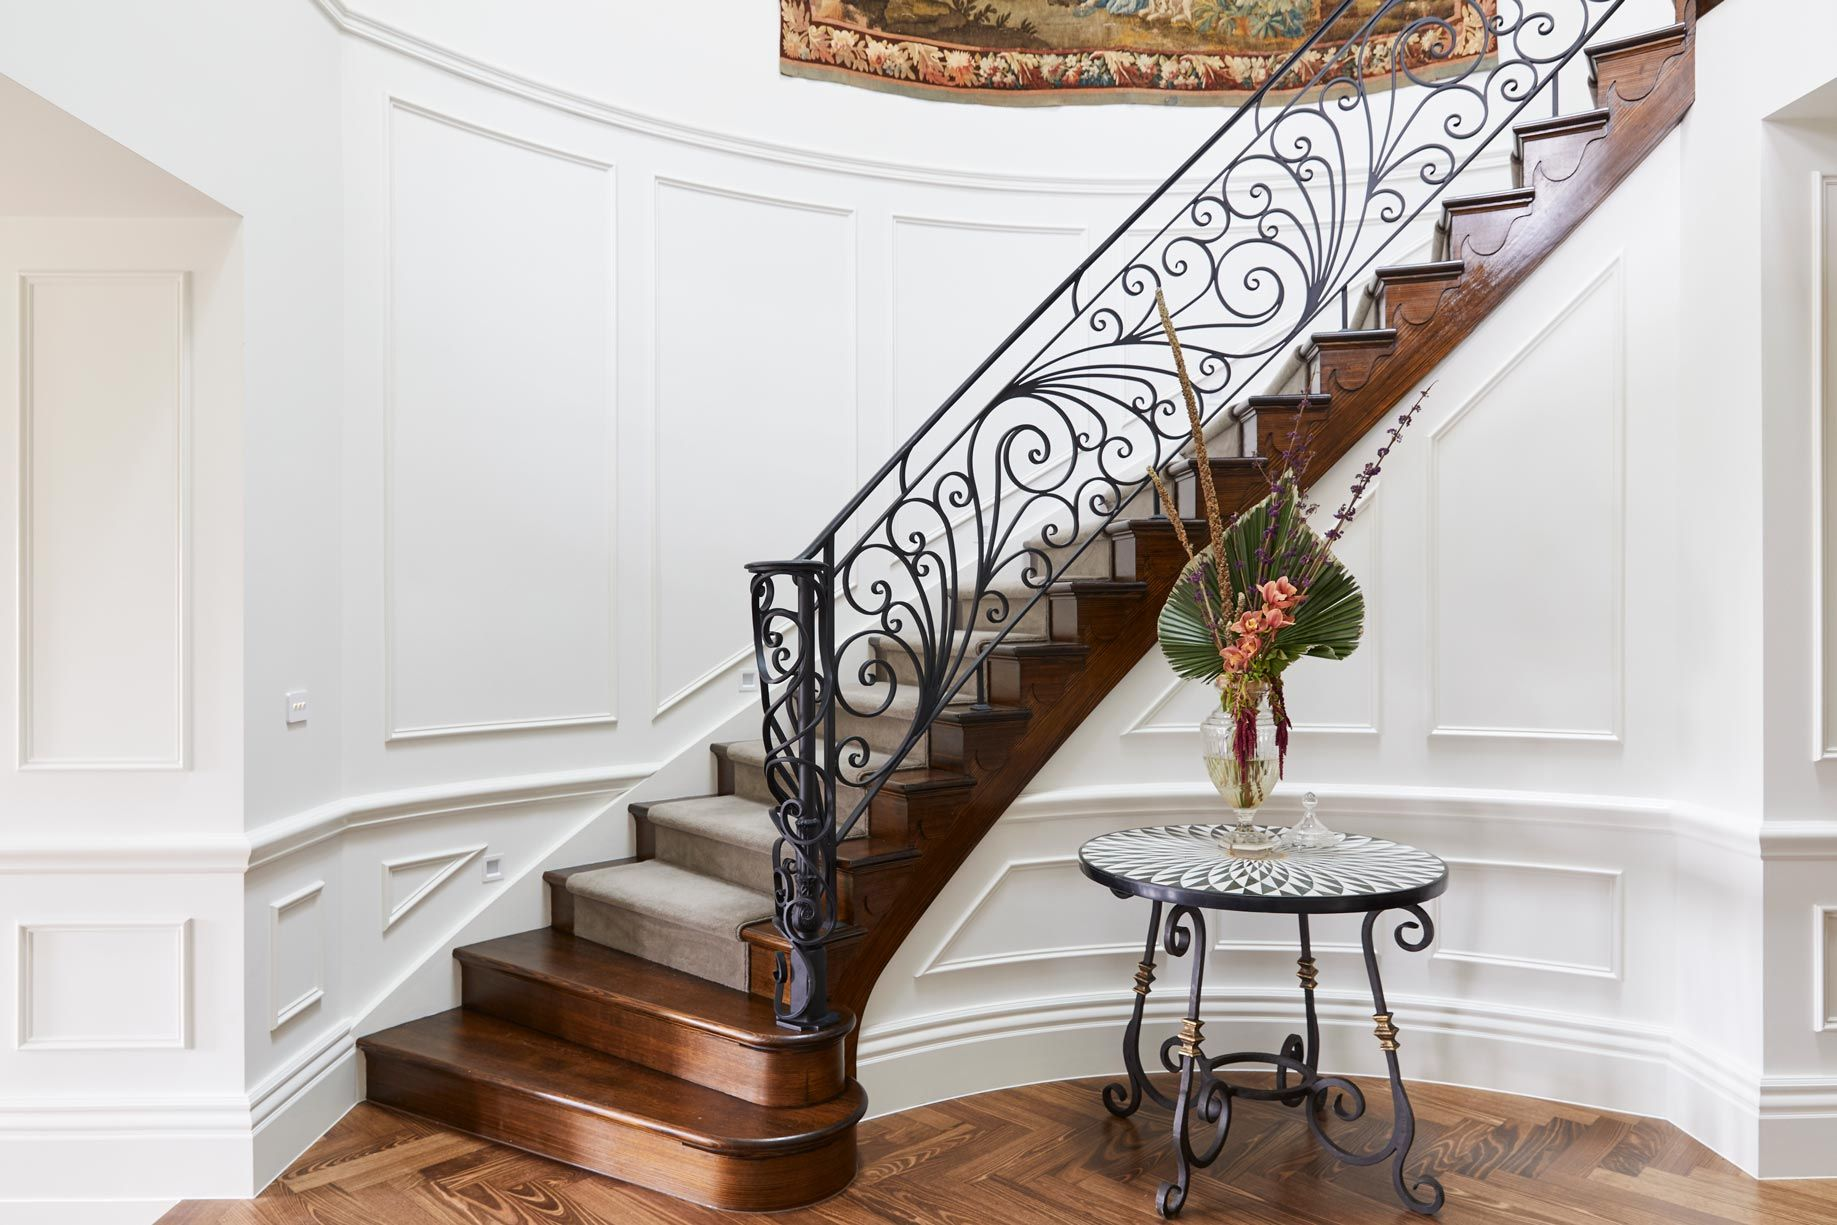 Madden Grove S&A Stairs Wrought iron handrail, Iron